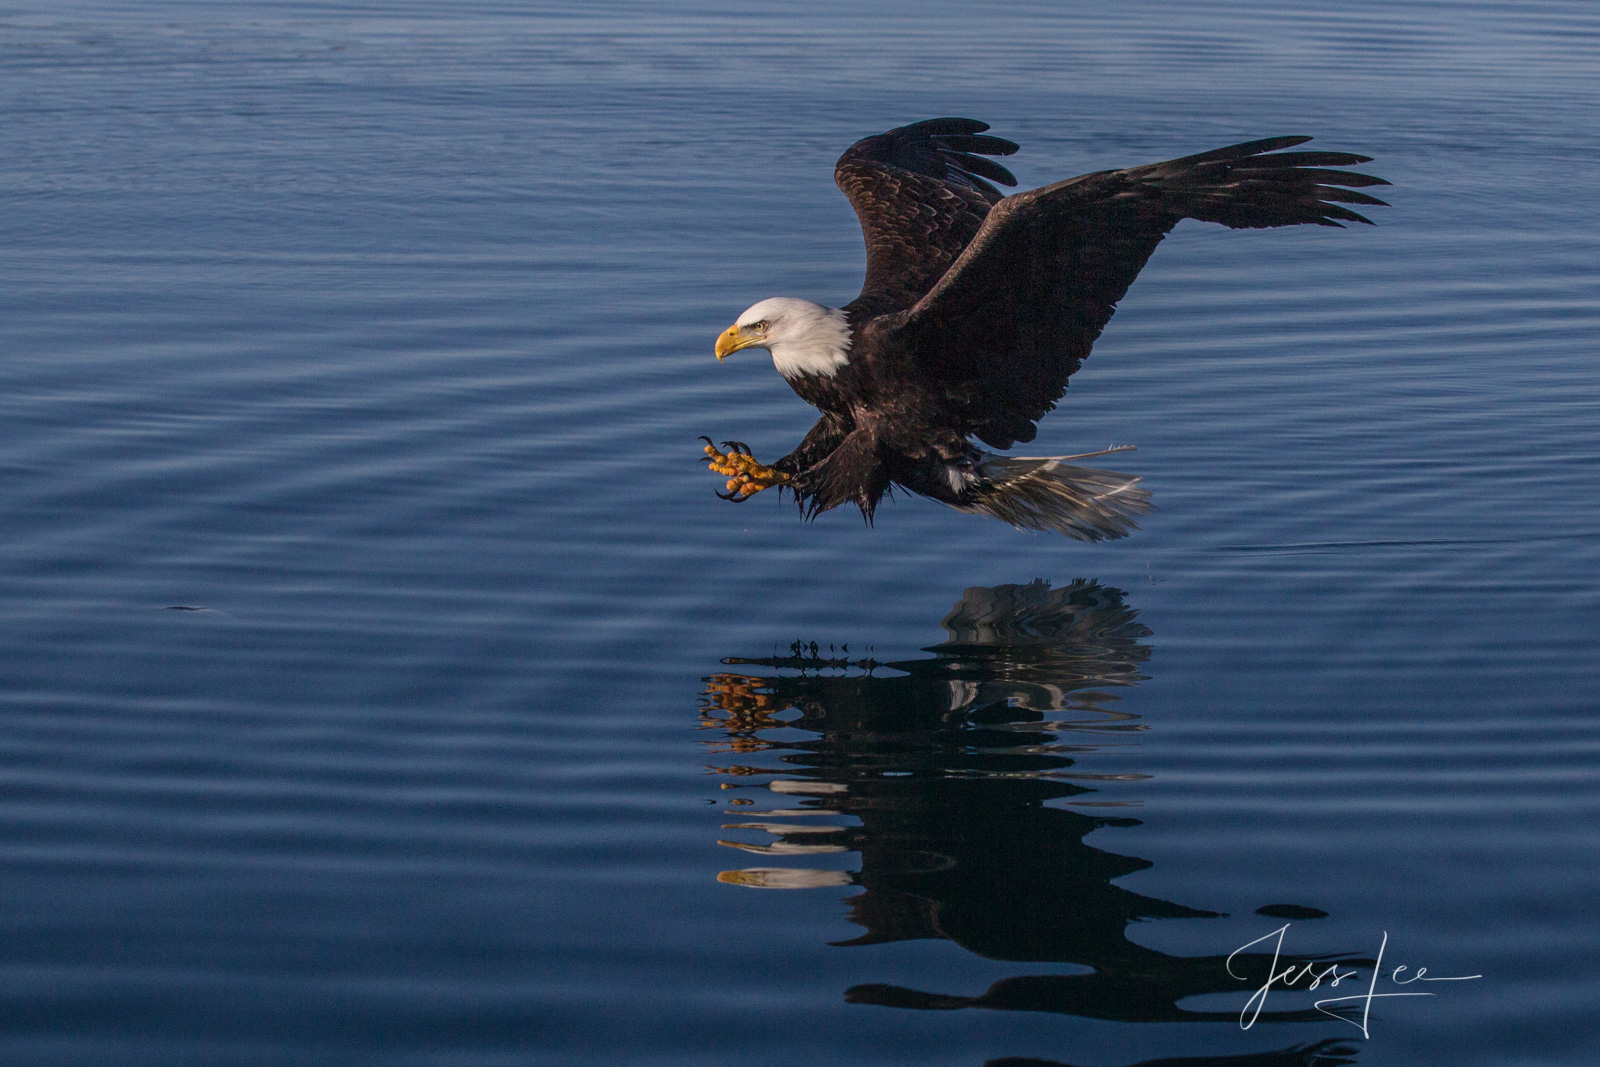 Bring home the power and beauty of the amazing fine art American Bald Eagle photograph Over Target by Jess Lee from his Wildlife...